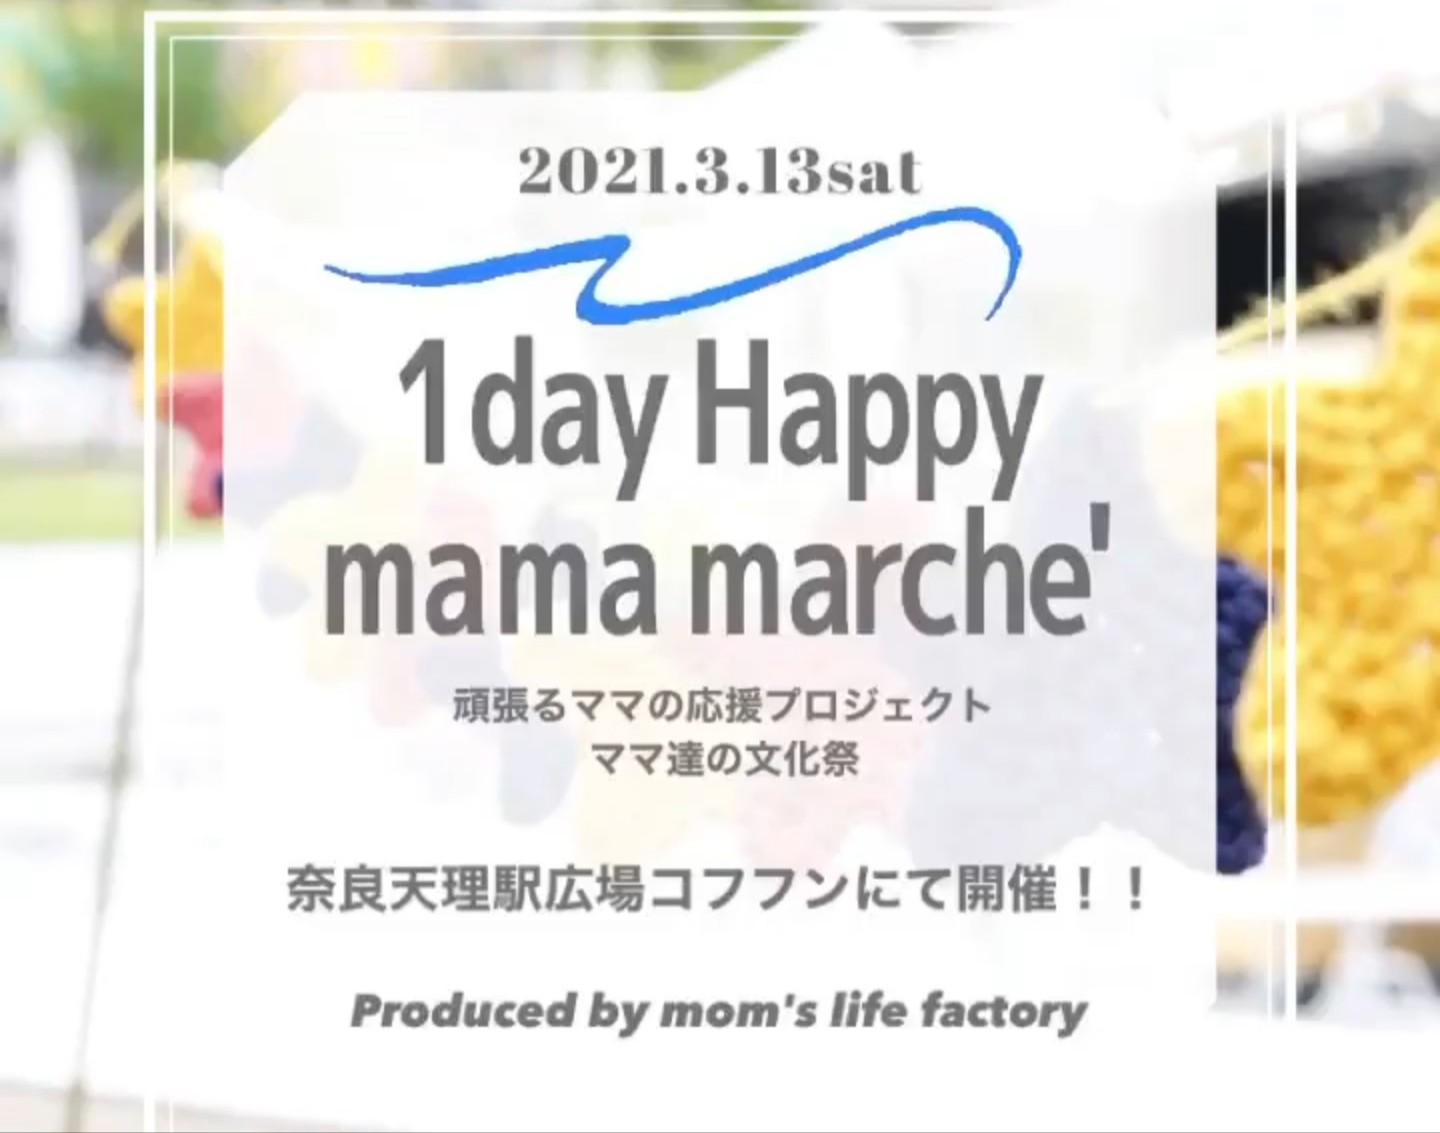 第4回 1day Happy mama marche'